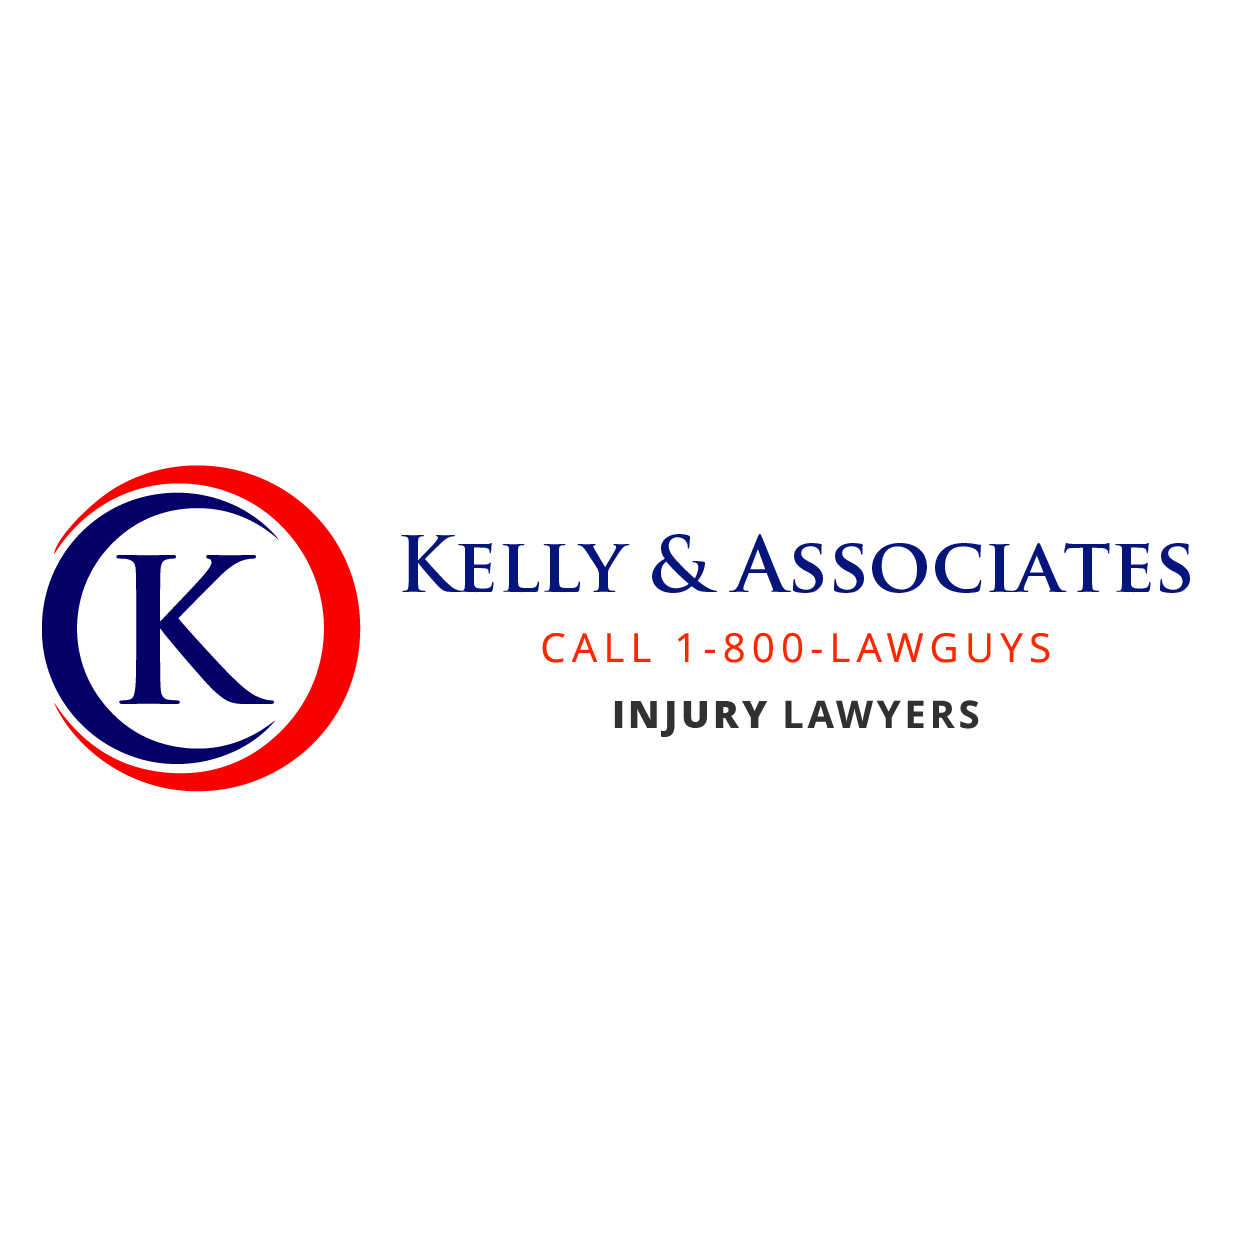 Personal Injury Attorney in MA Boston 02110 Kelly & Associates Injury Lawyers 83 Atlantic Ave Suite 202 (617)807-0855